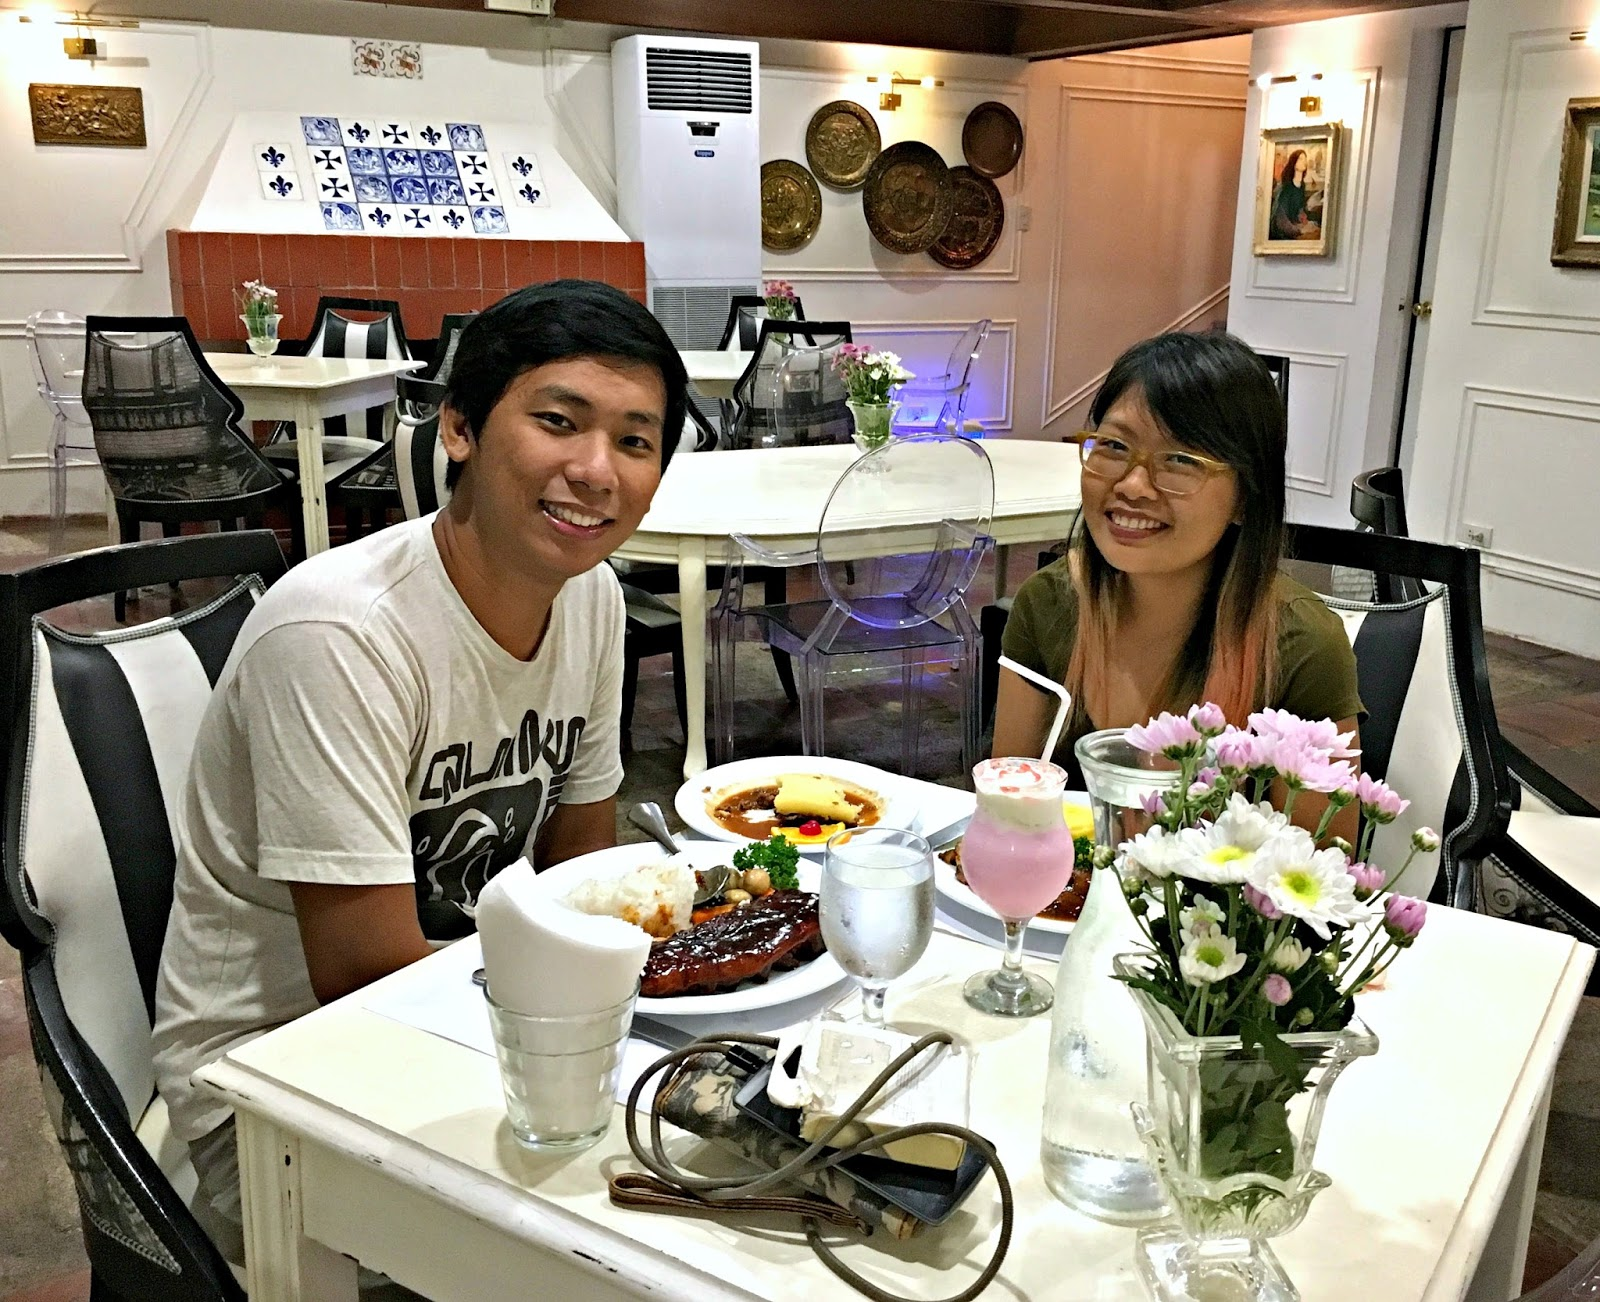 Charito by Bag of Beans dinner date